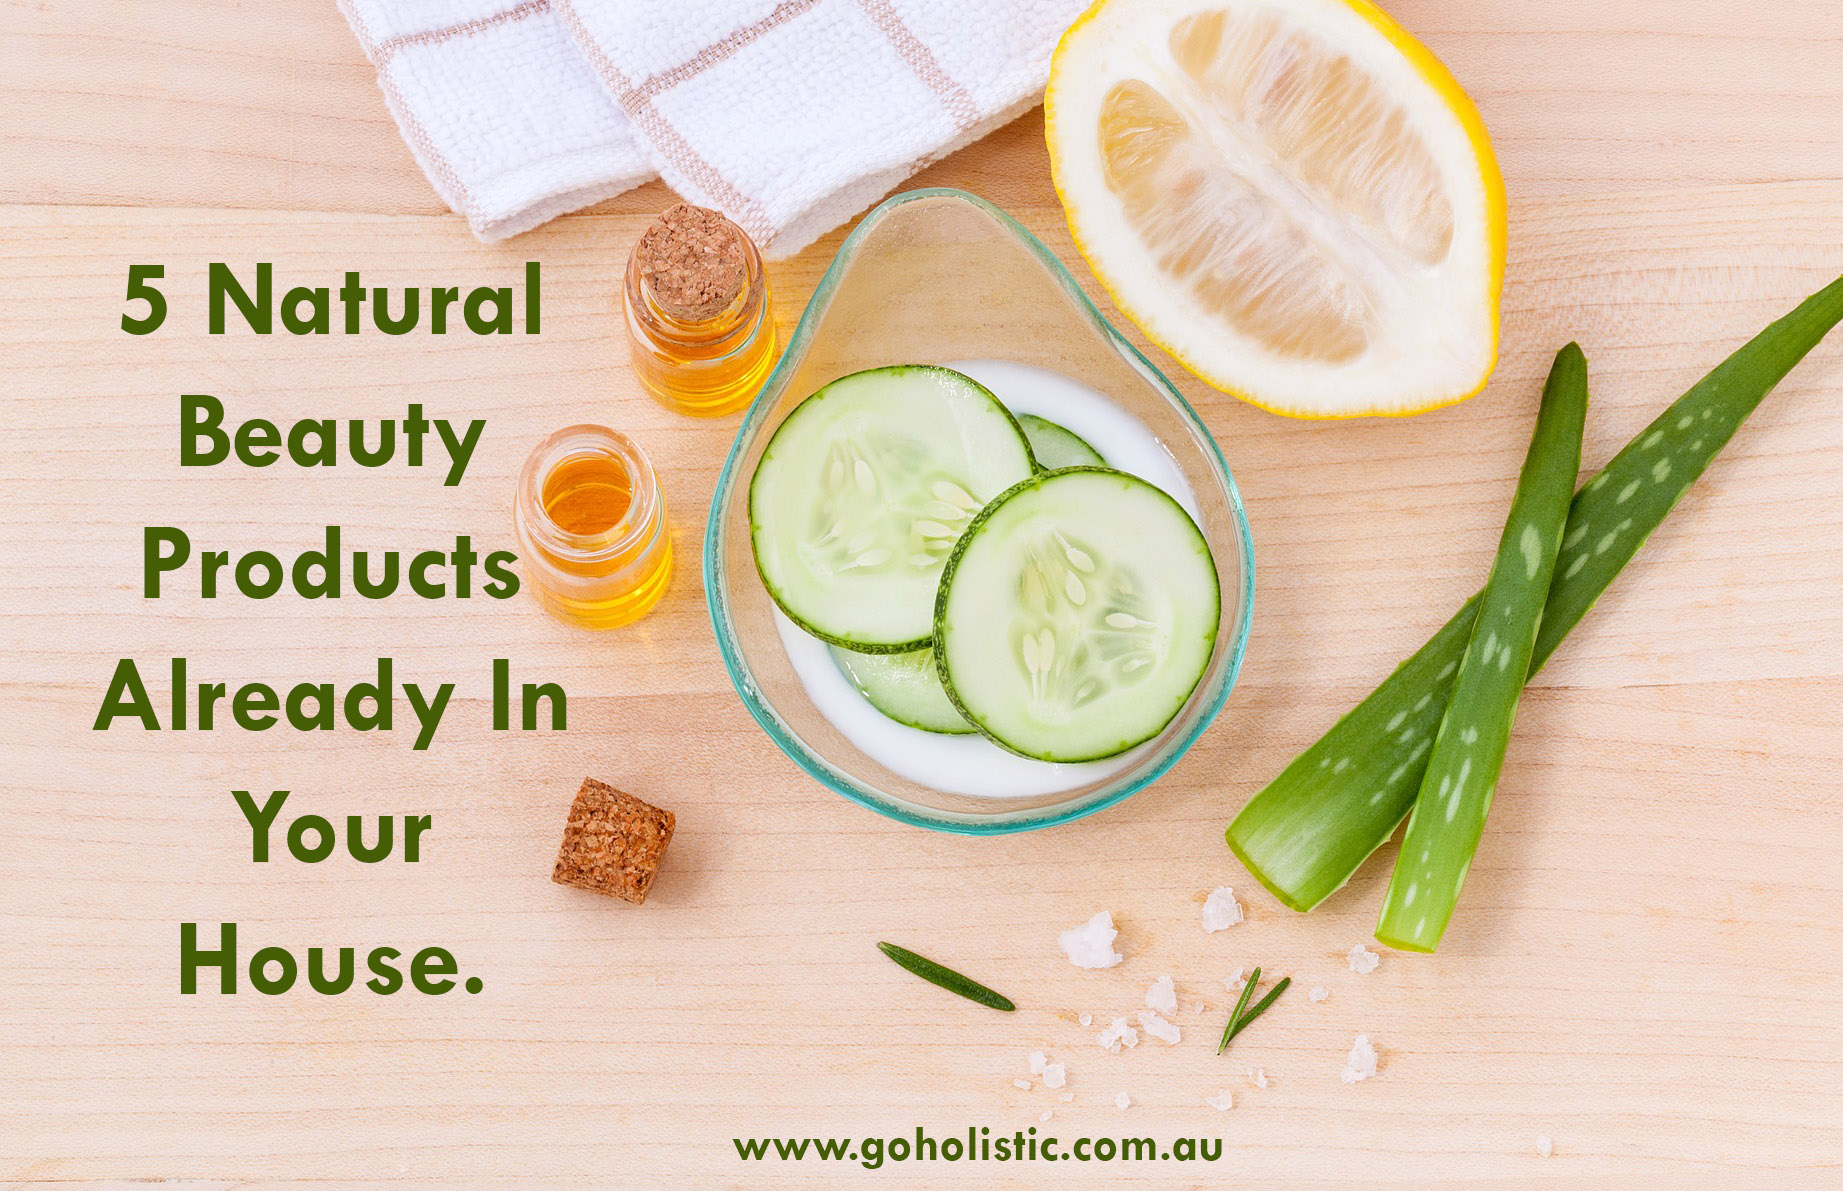 5 Natural Beauty Products Already In Your House